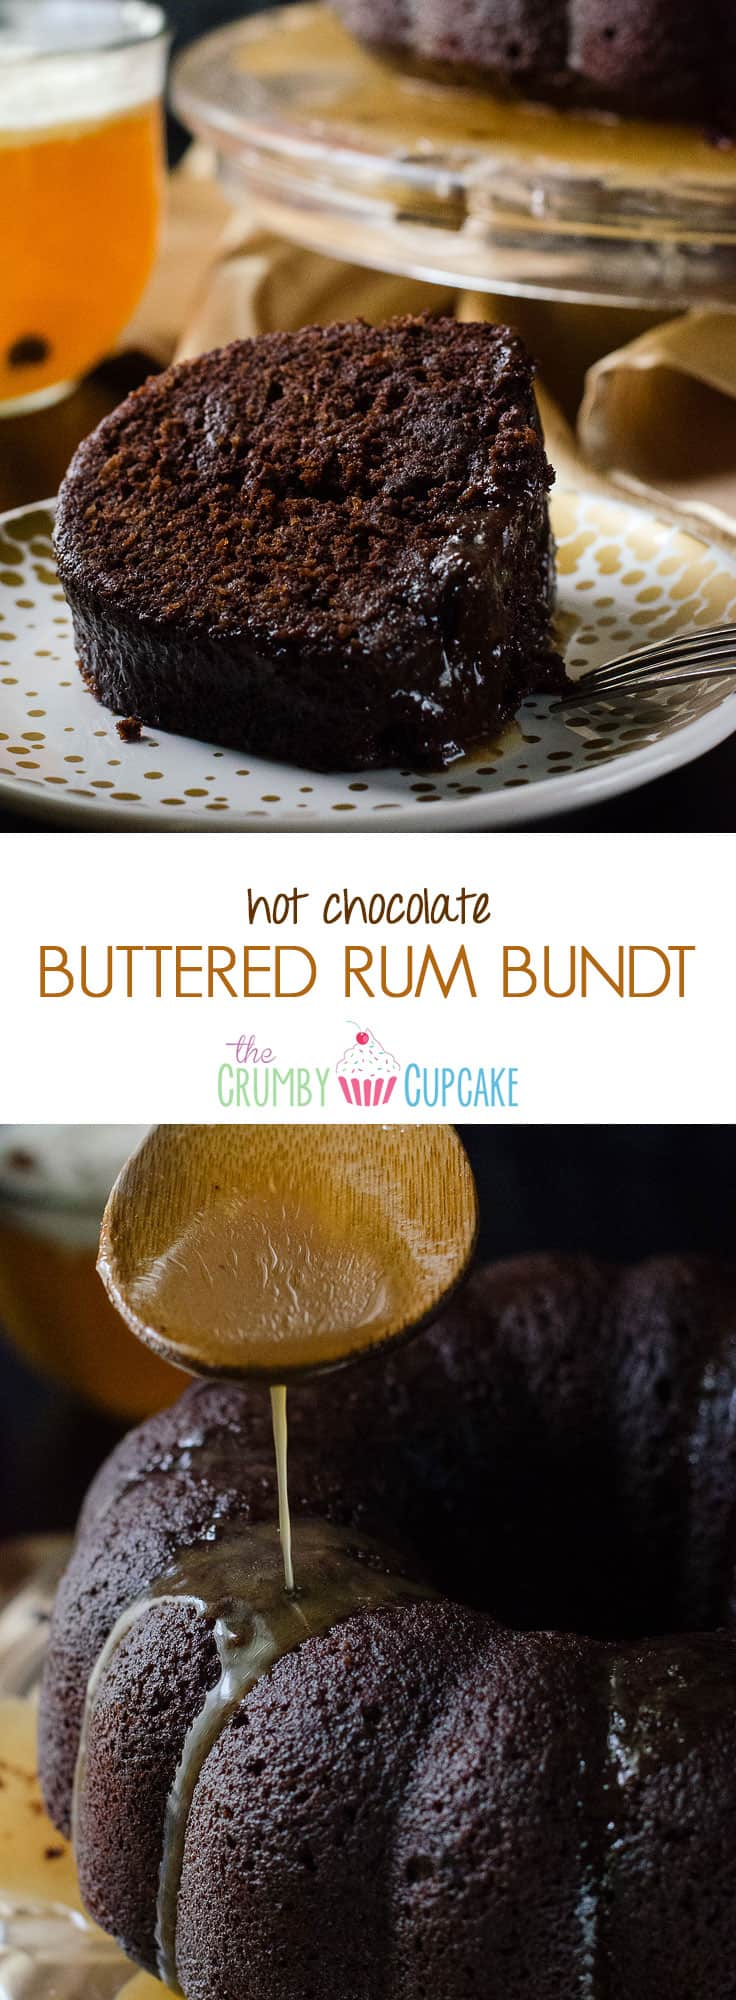 Chocolate Rum Glaze For Bundt Cake